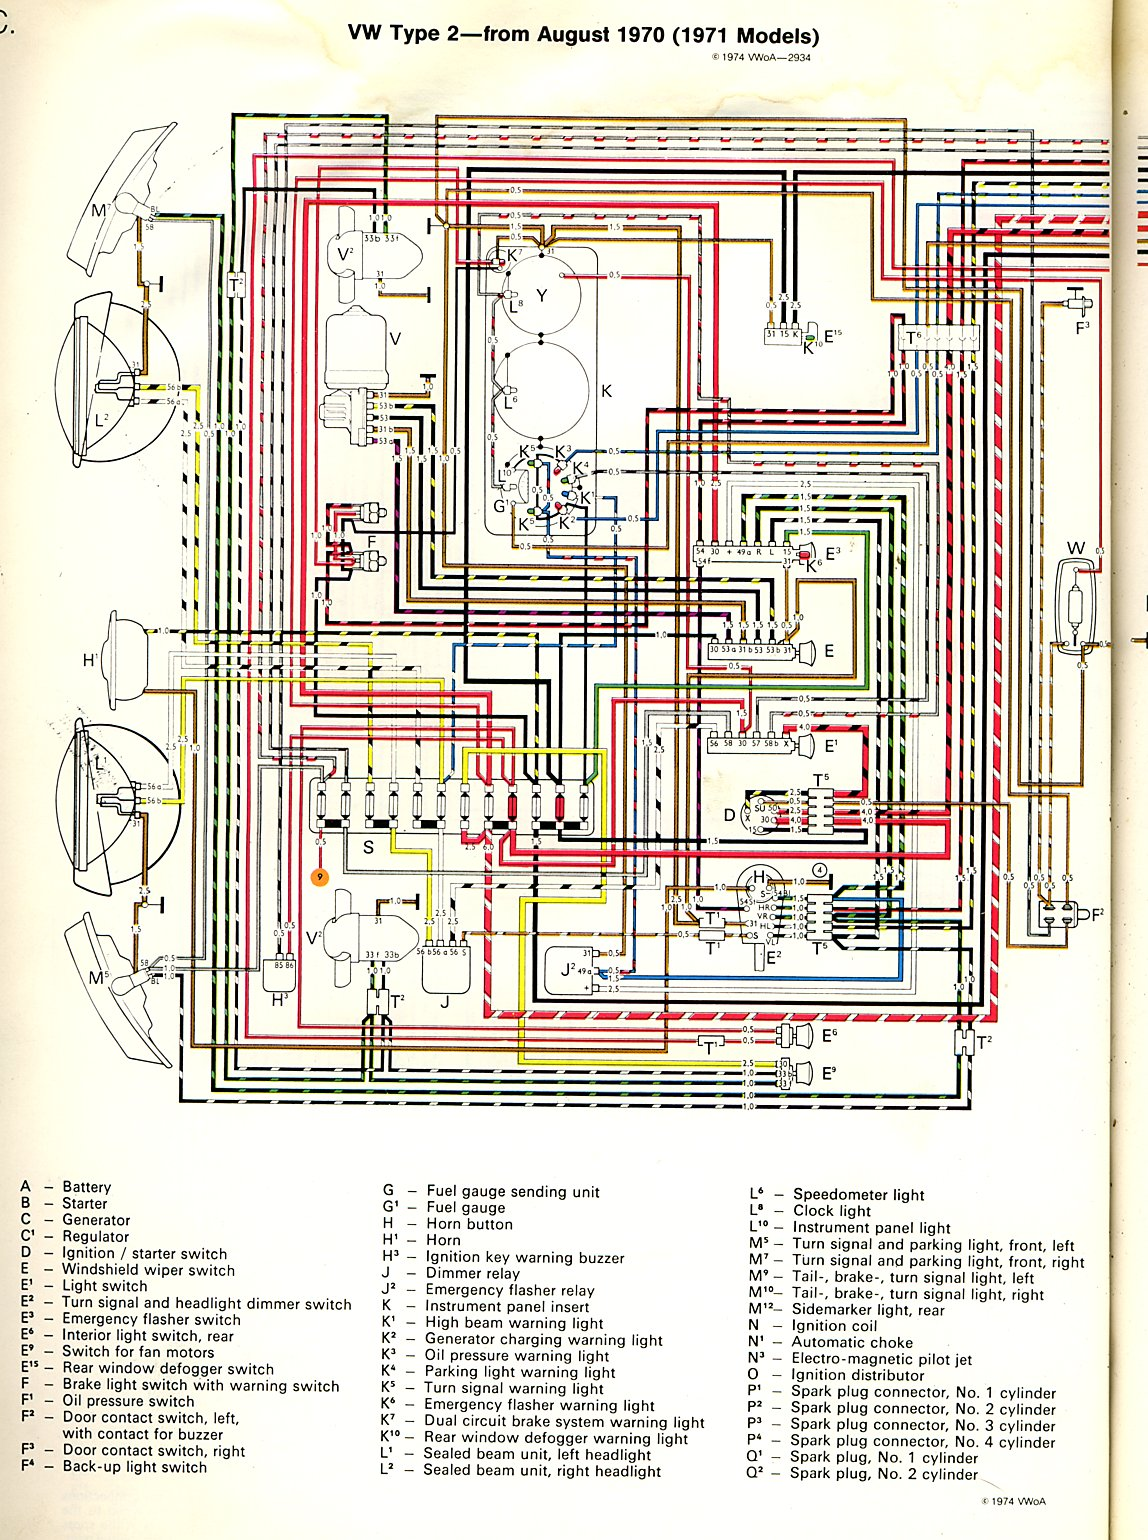 baybus_71a 71 vw bus wiring diagram 1970 vw bus fuse box diagram \u2022 wiring Wiring Harness Diagram at gsmx.co